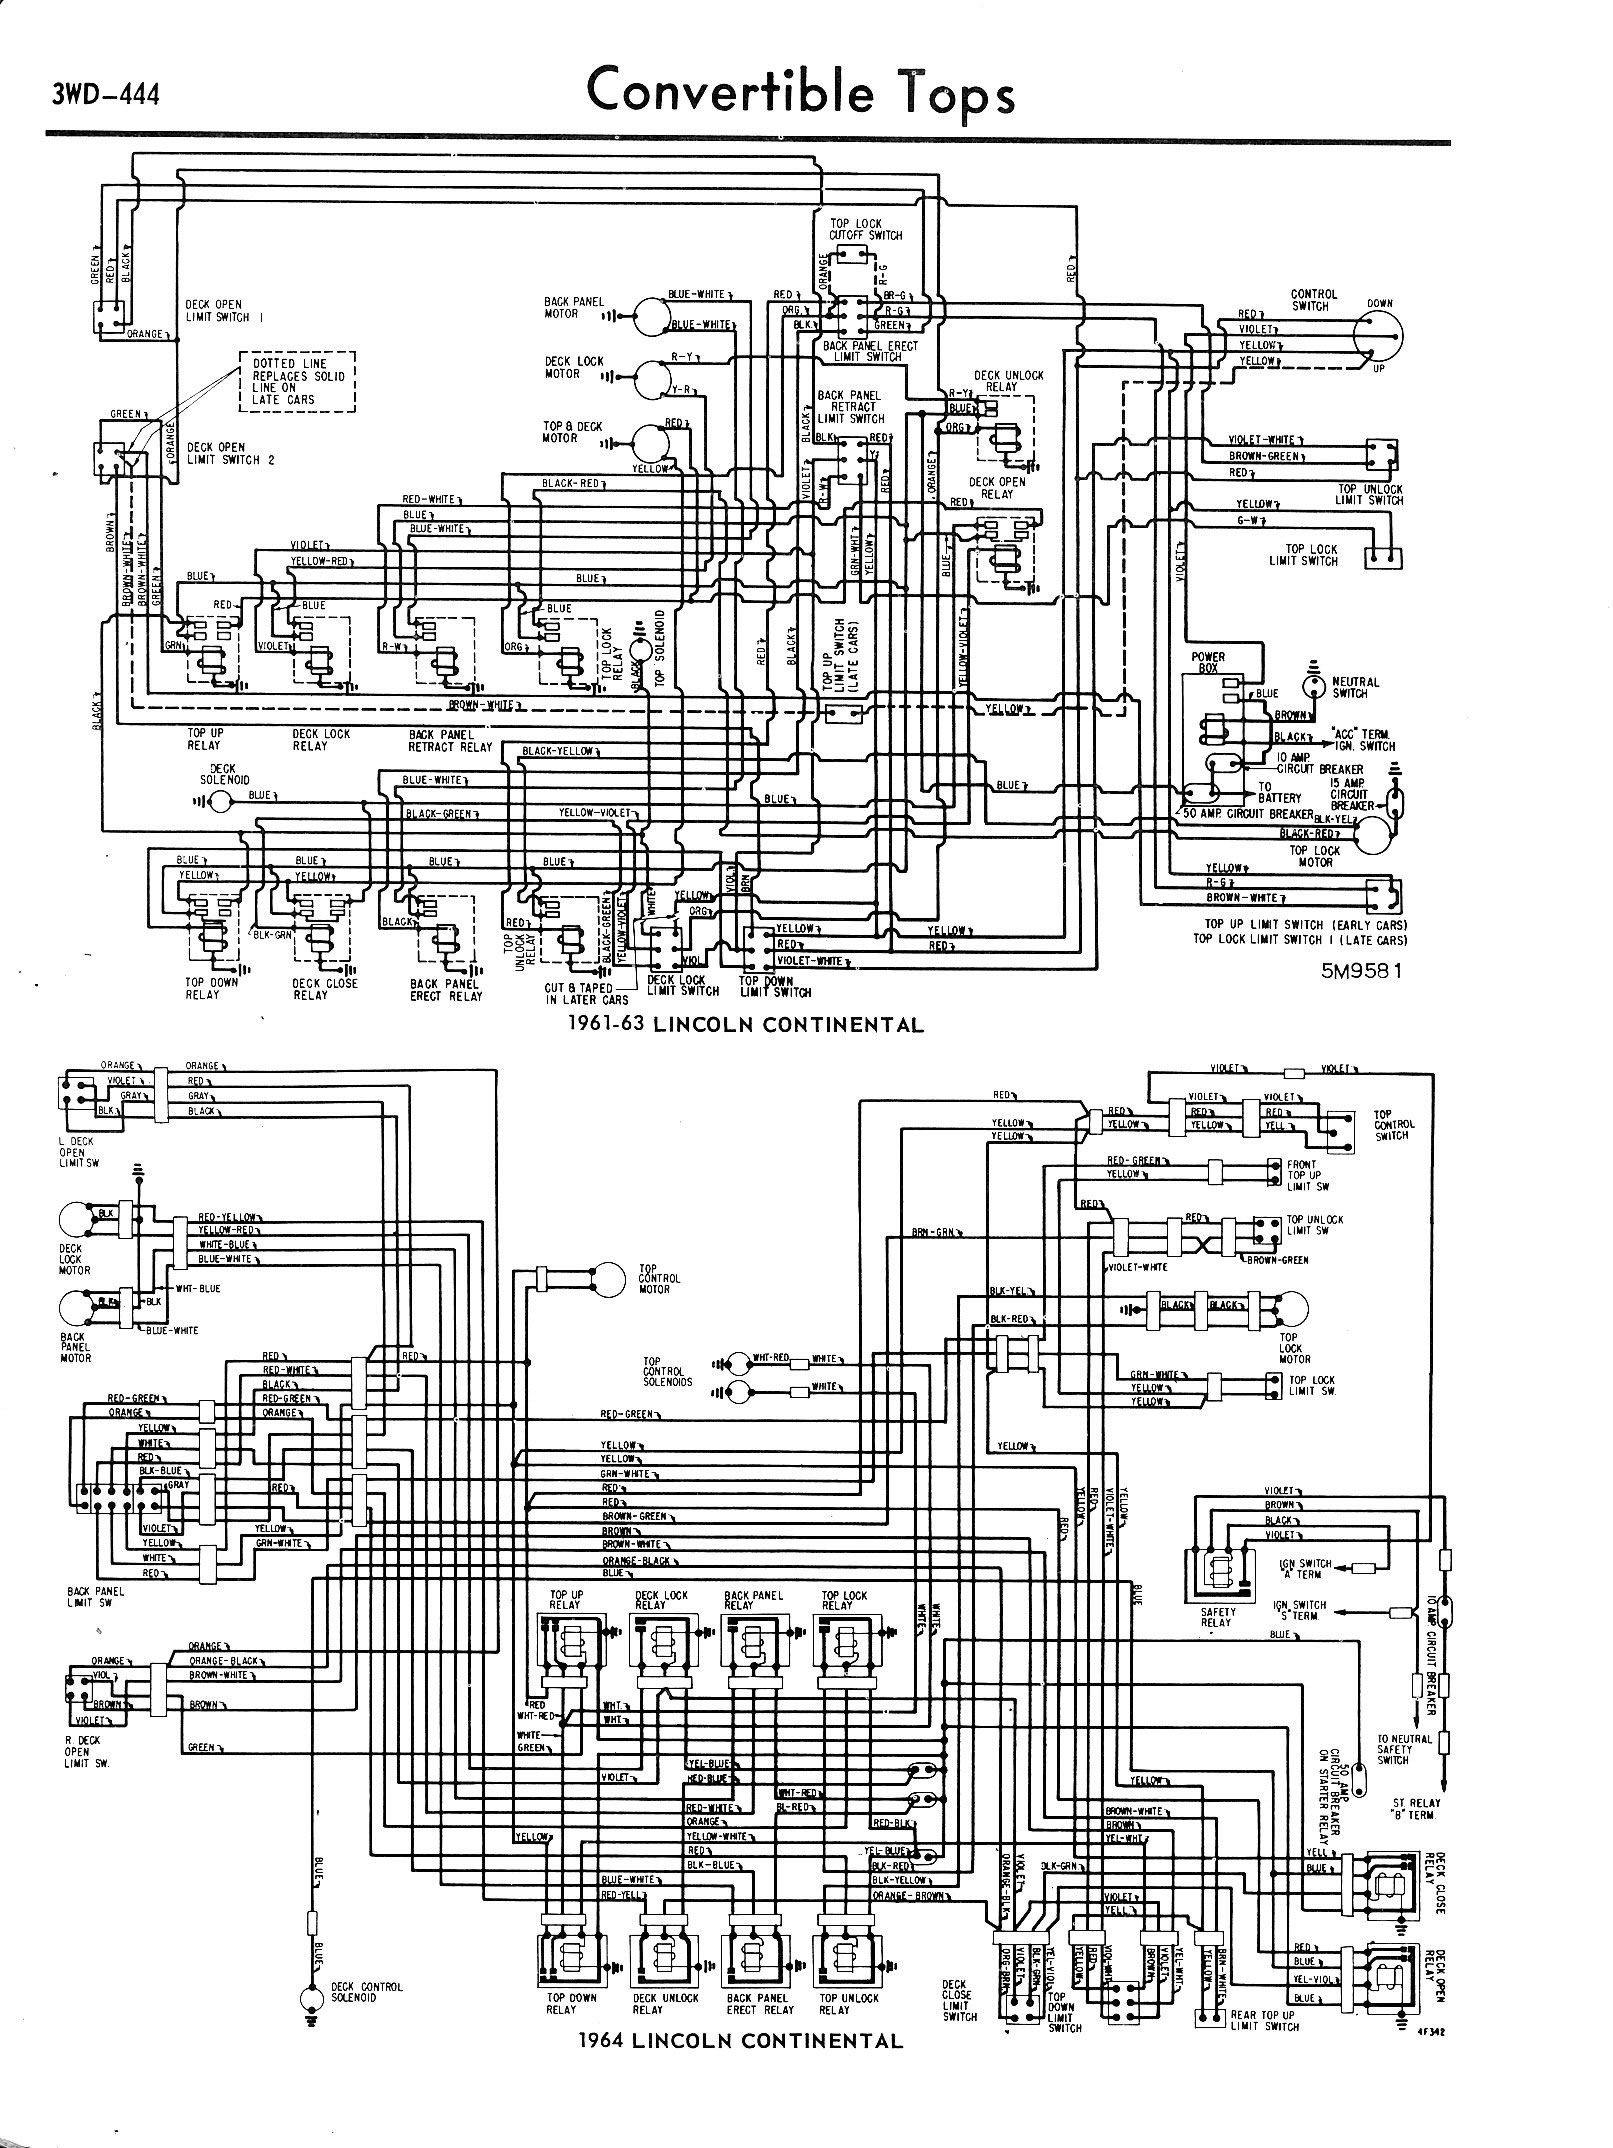 1965 Thunderbird Window Wiring Diagram Library 1961 Chevy Dash Free Download 1966 Ford Power Get Lincoln Continental 1963